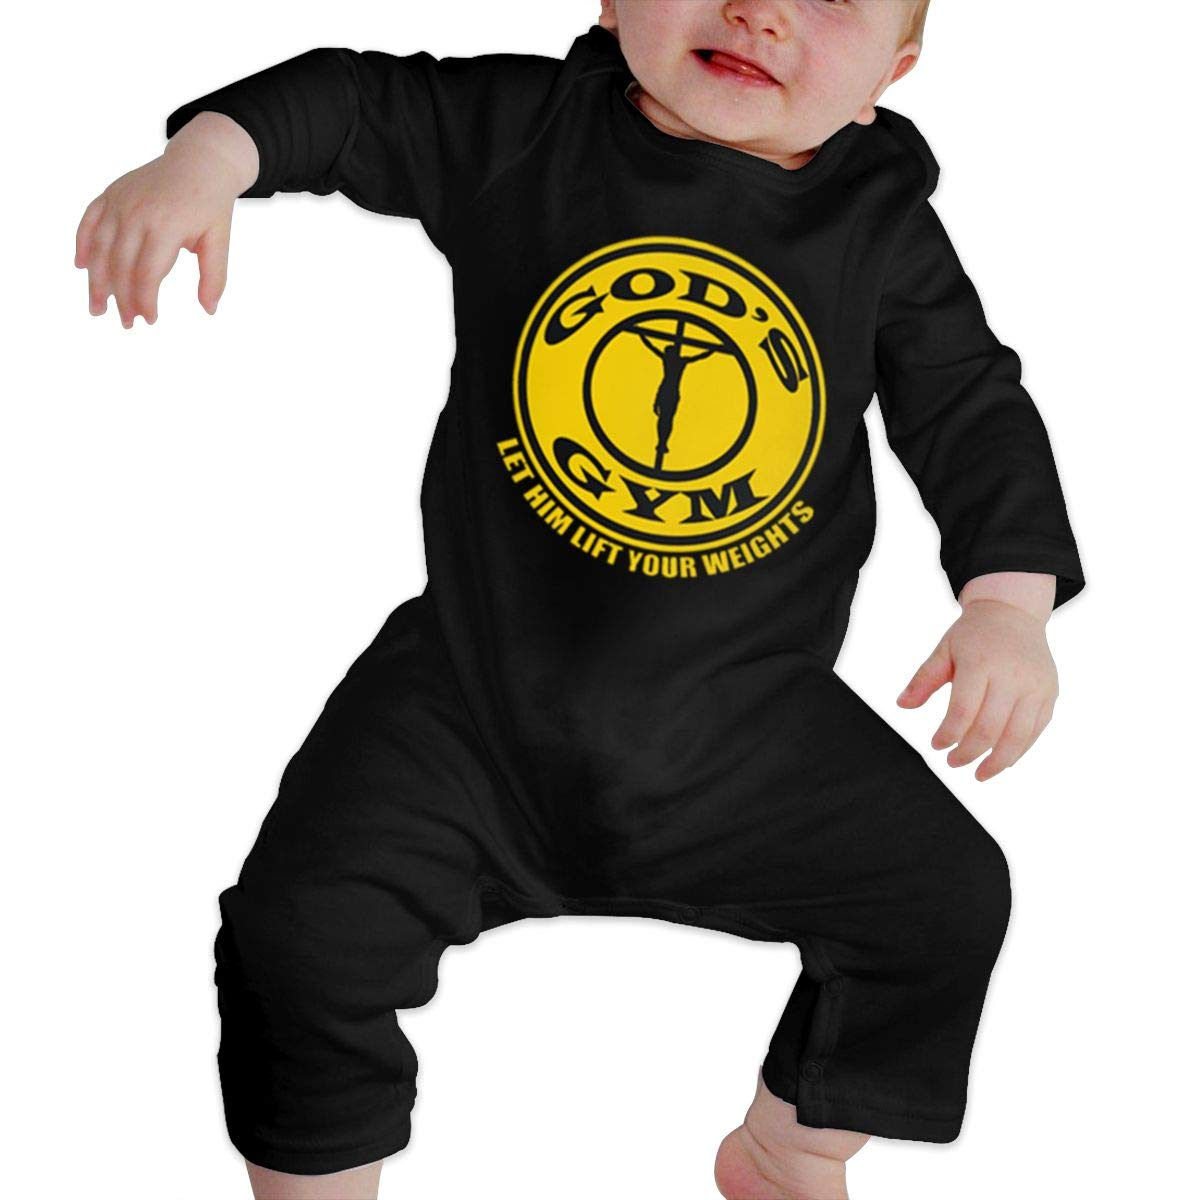 Gods Gym Unisex Long Sleeve Baby Gown Baby Bodysuit Unionsuit Footed Pajamas Romper Jumpsuit